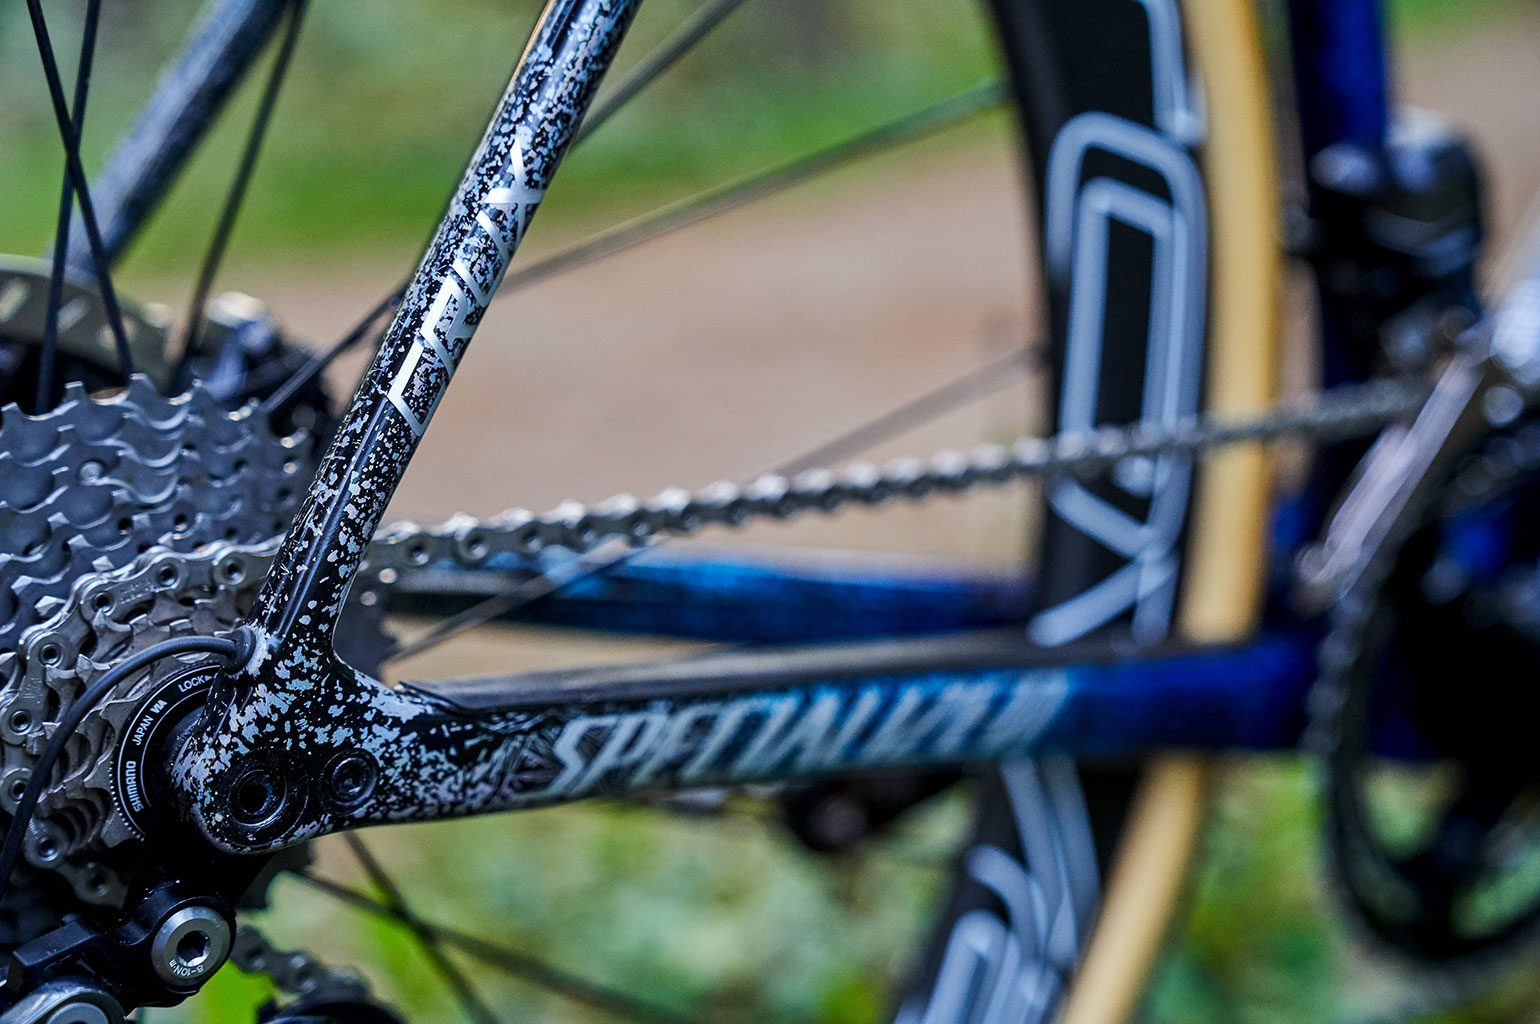 Specialized Crux Frozen Ground Zdenek Stybar